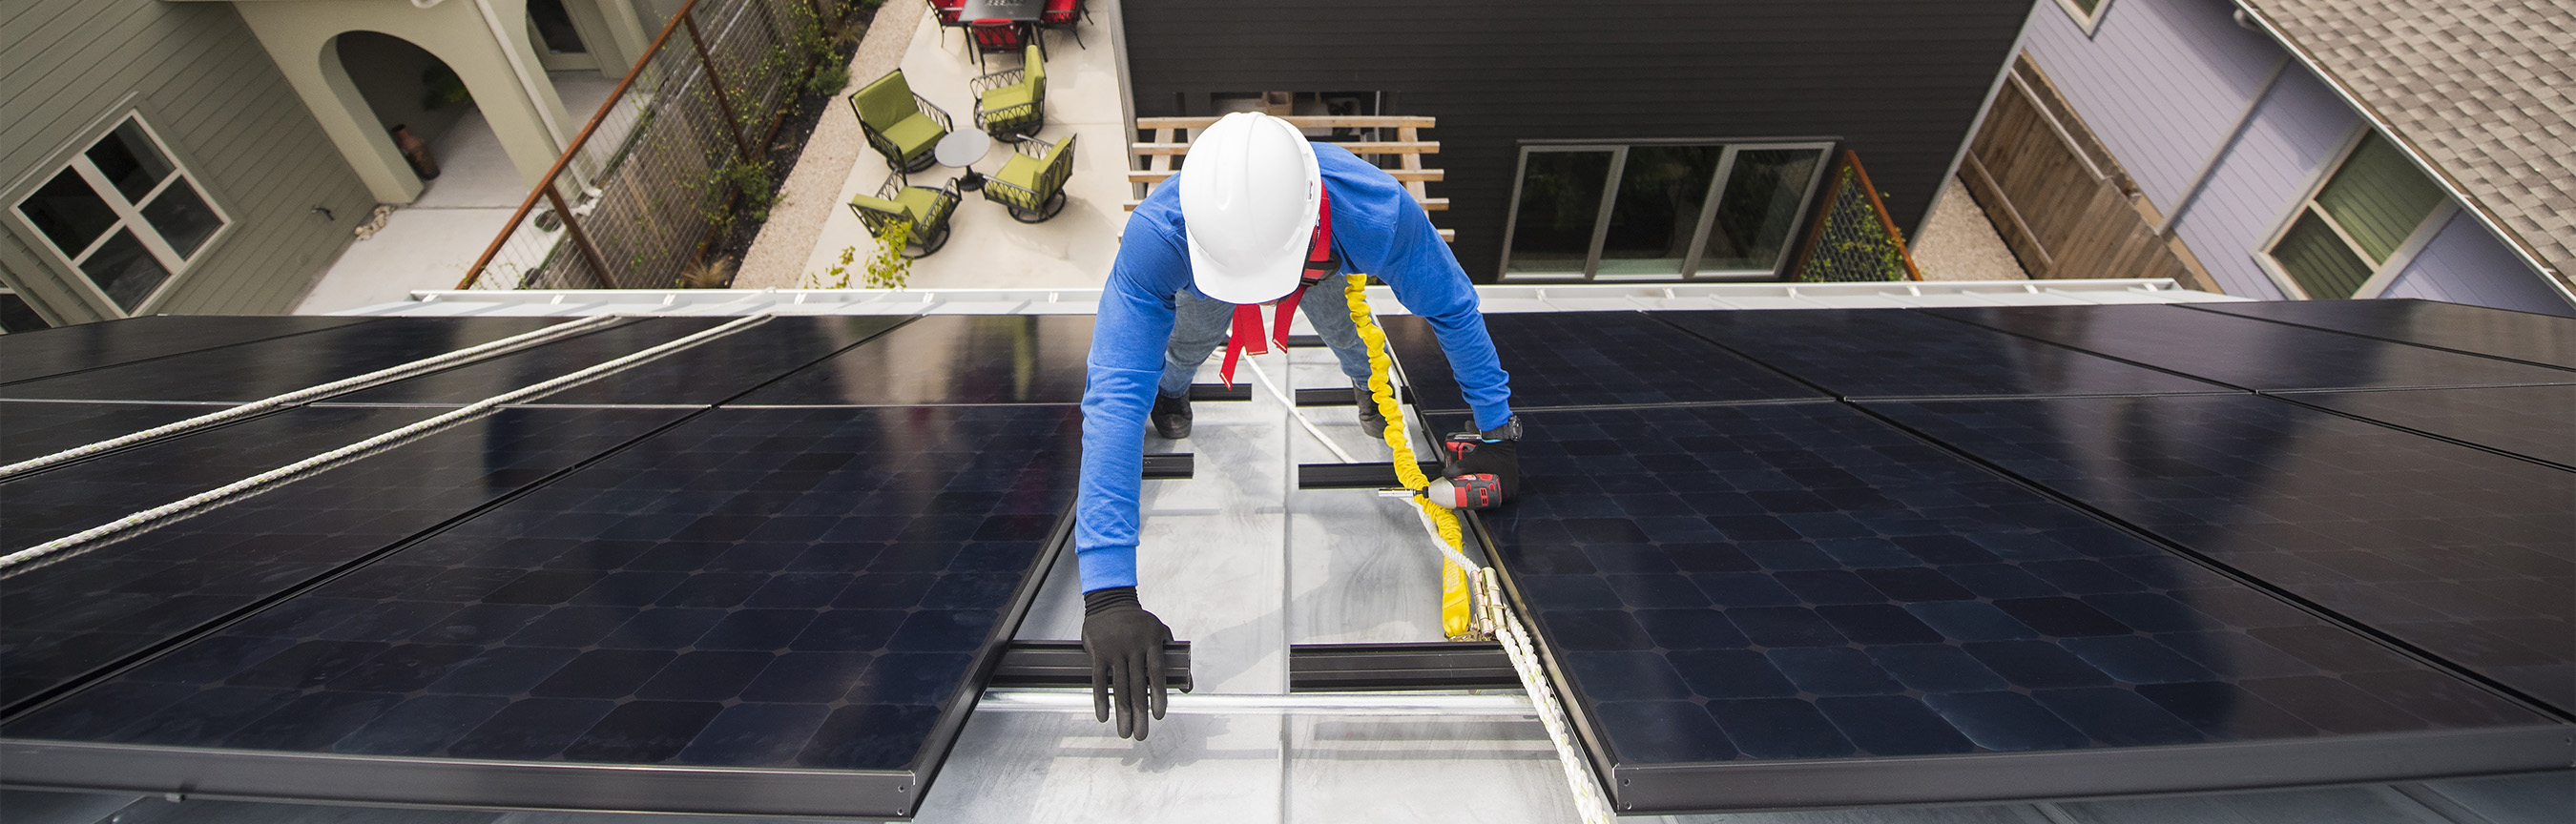 SunpPower tech on a roof installing solar panels.